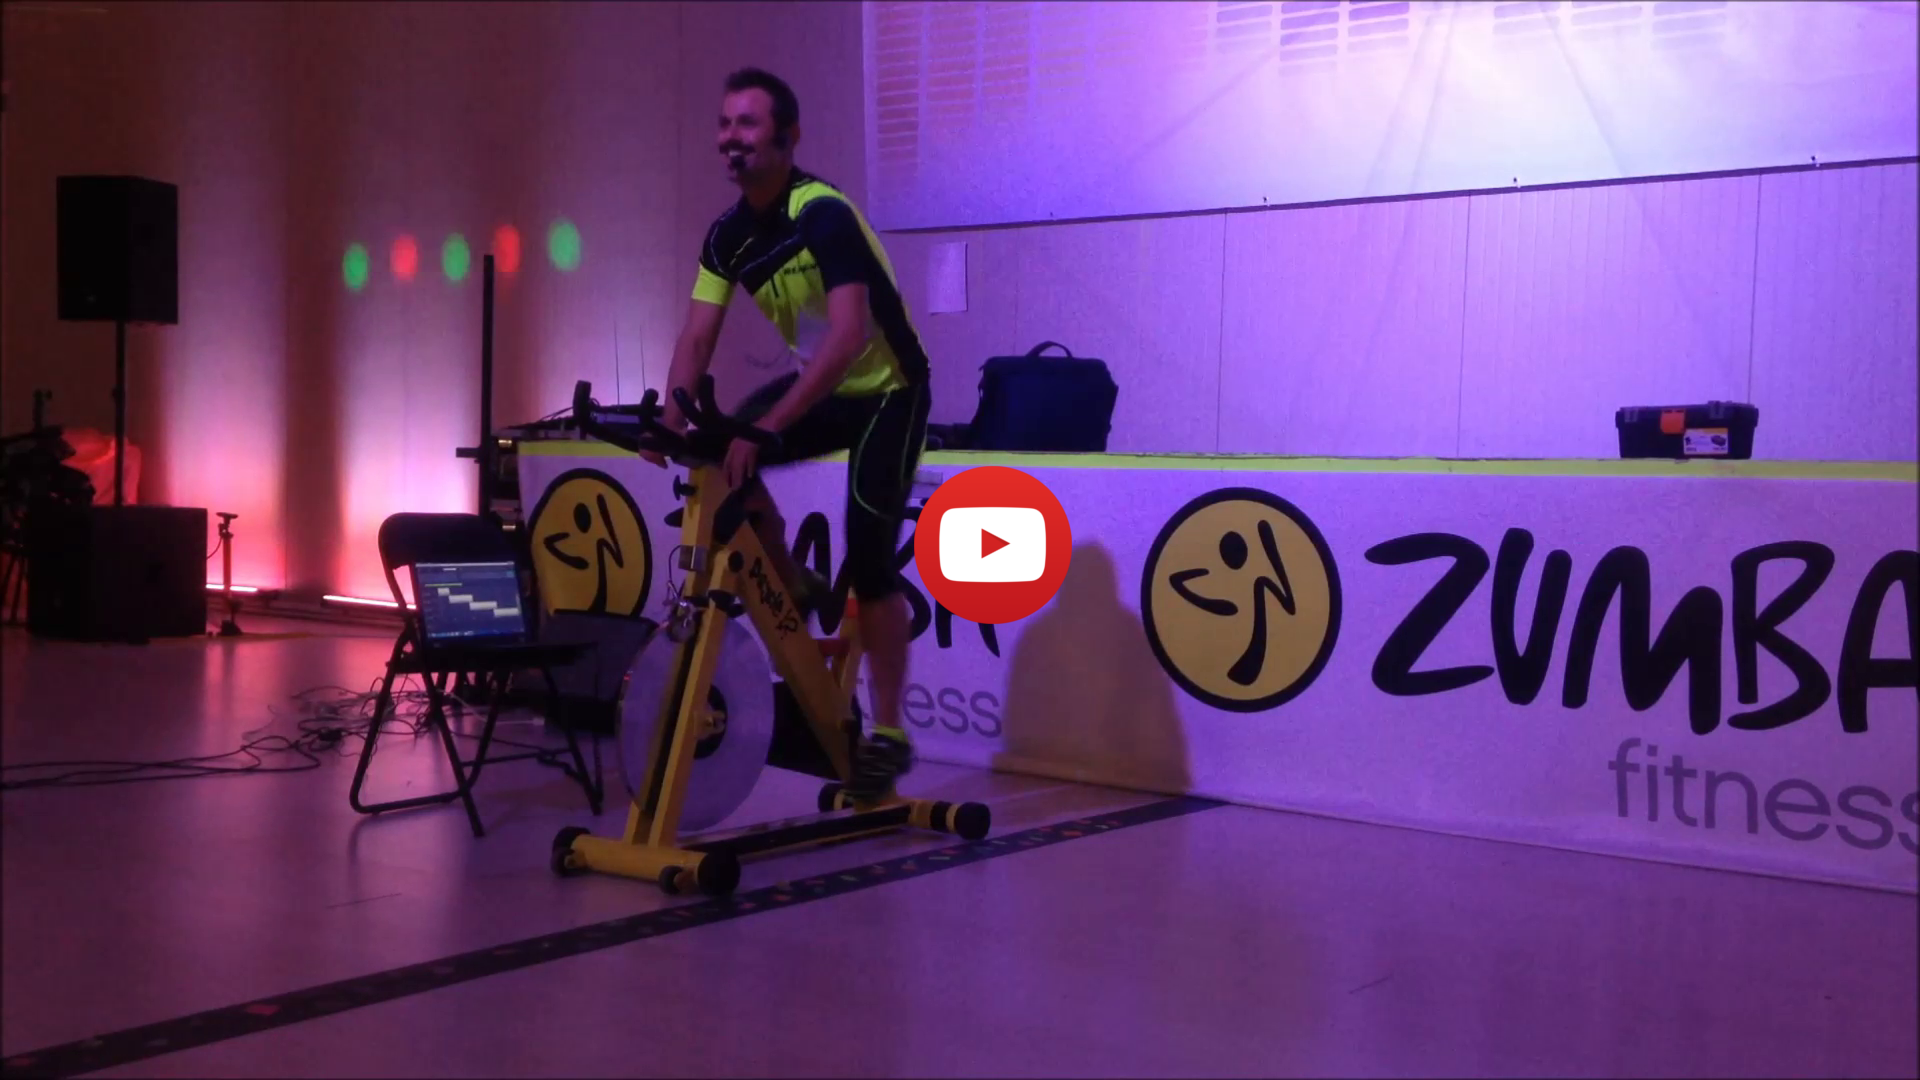 ,indoor cycling lezione, lezione spinning simeone luca